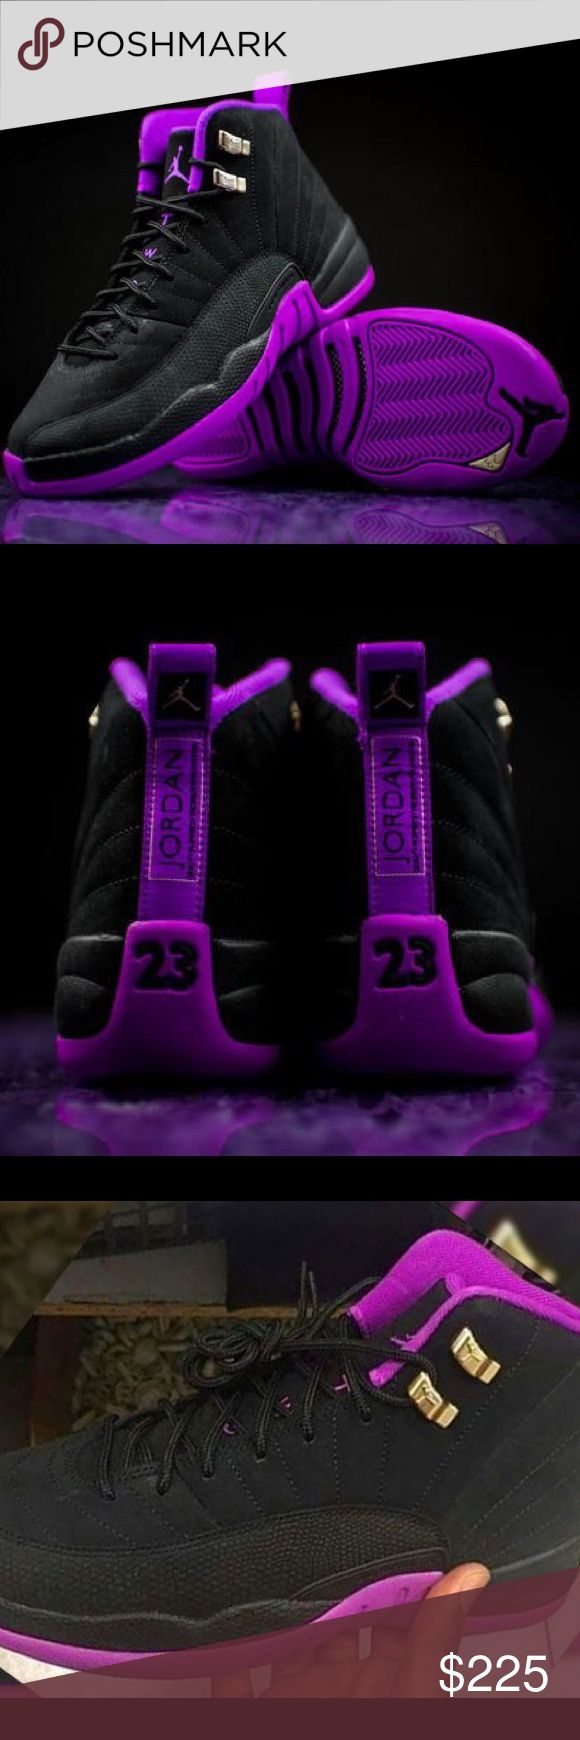 AIR JORDAN RETRO 12sVARSITY PURPLE/BLACK AIR JORDAN RETRO 12sVARSITY PURPLE/BLACKGIRL SIZES Thru️️ORDERS ONLY‼️ Jordan Shoes Athletic Shoes